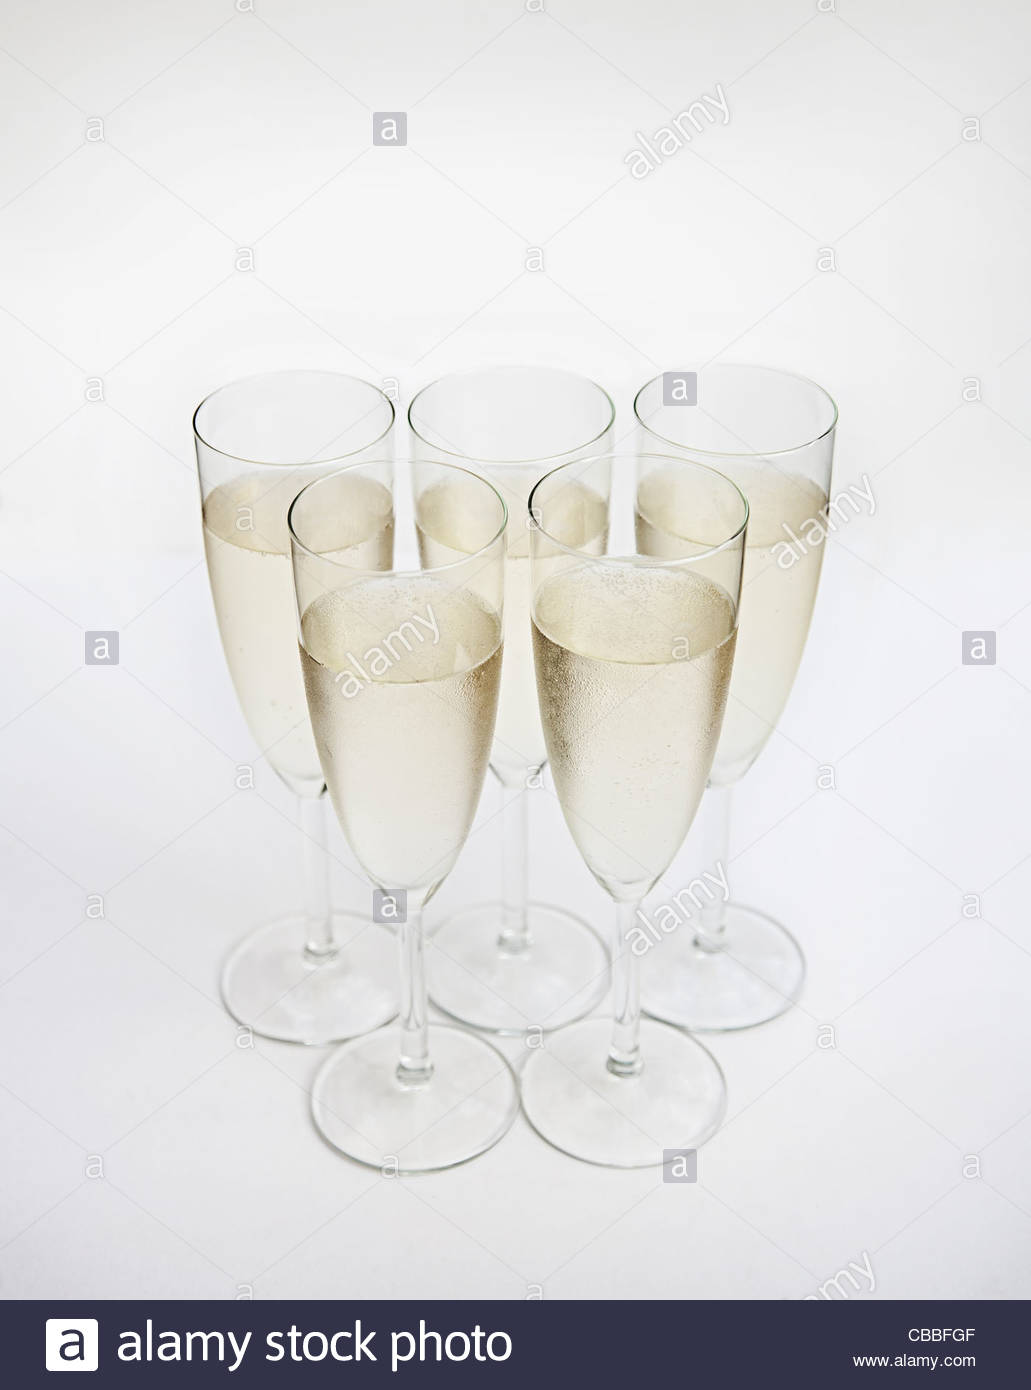 Glasses of champagne - Stock Image